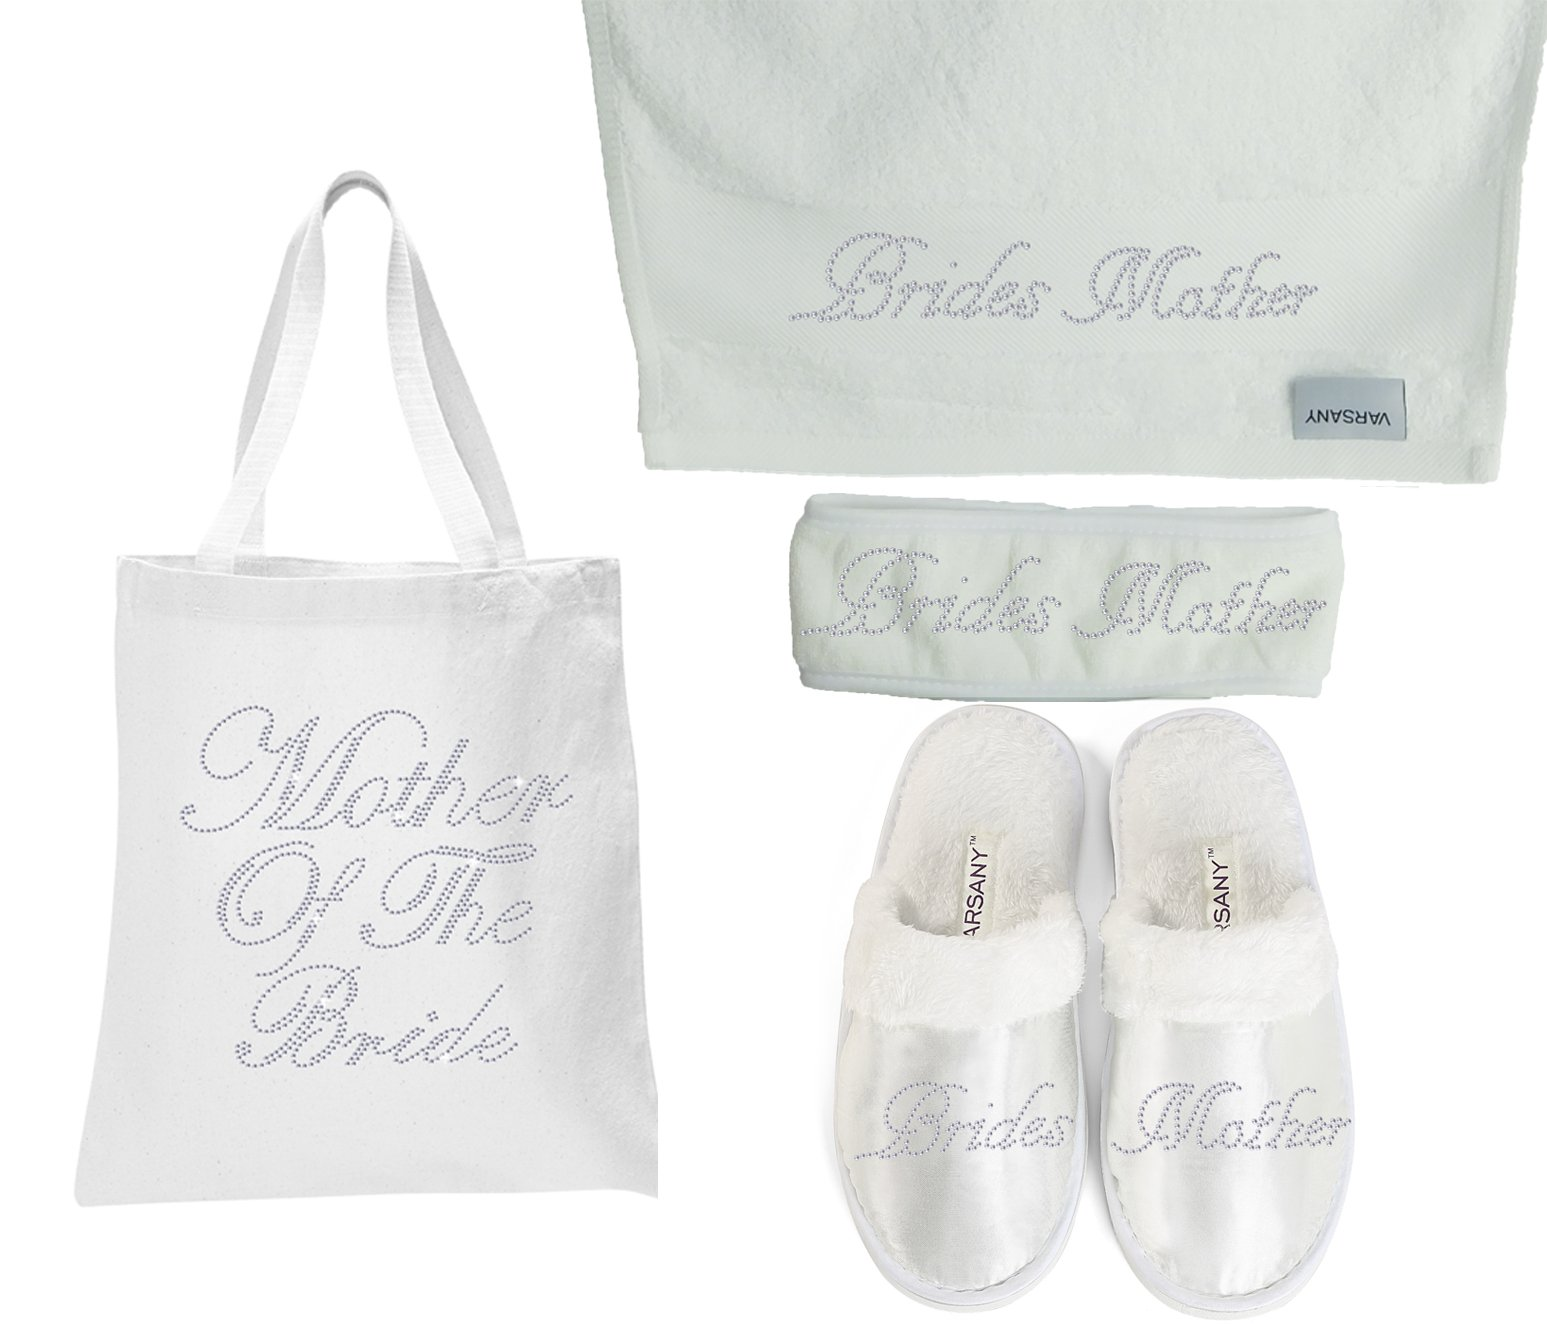 Varsany Mother Of The Bride Spa Rhinestone Bridal Tote Bag+Slippers+Hand Towel+Headband Honeymoon Hen Party gift (4)